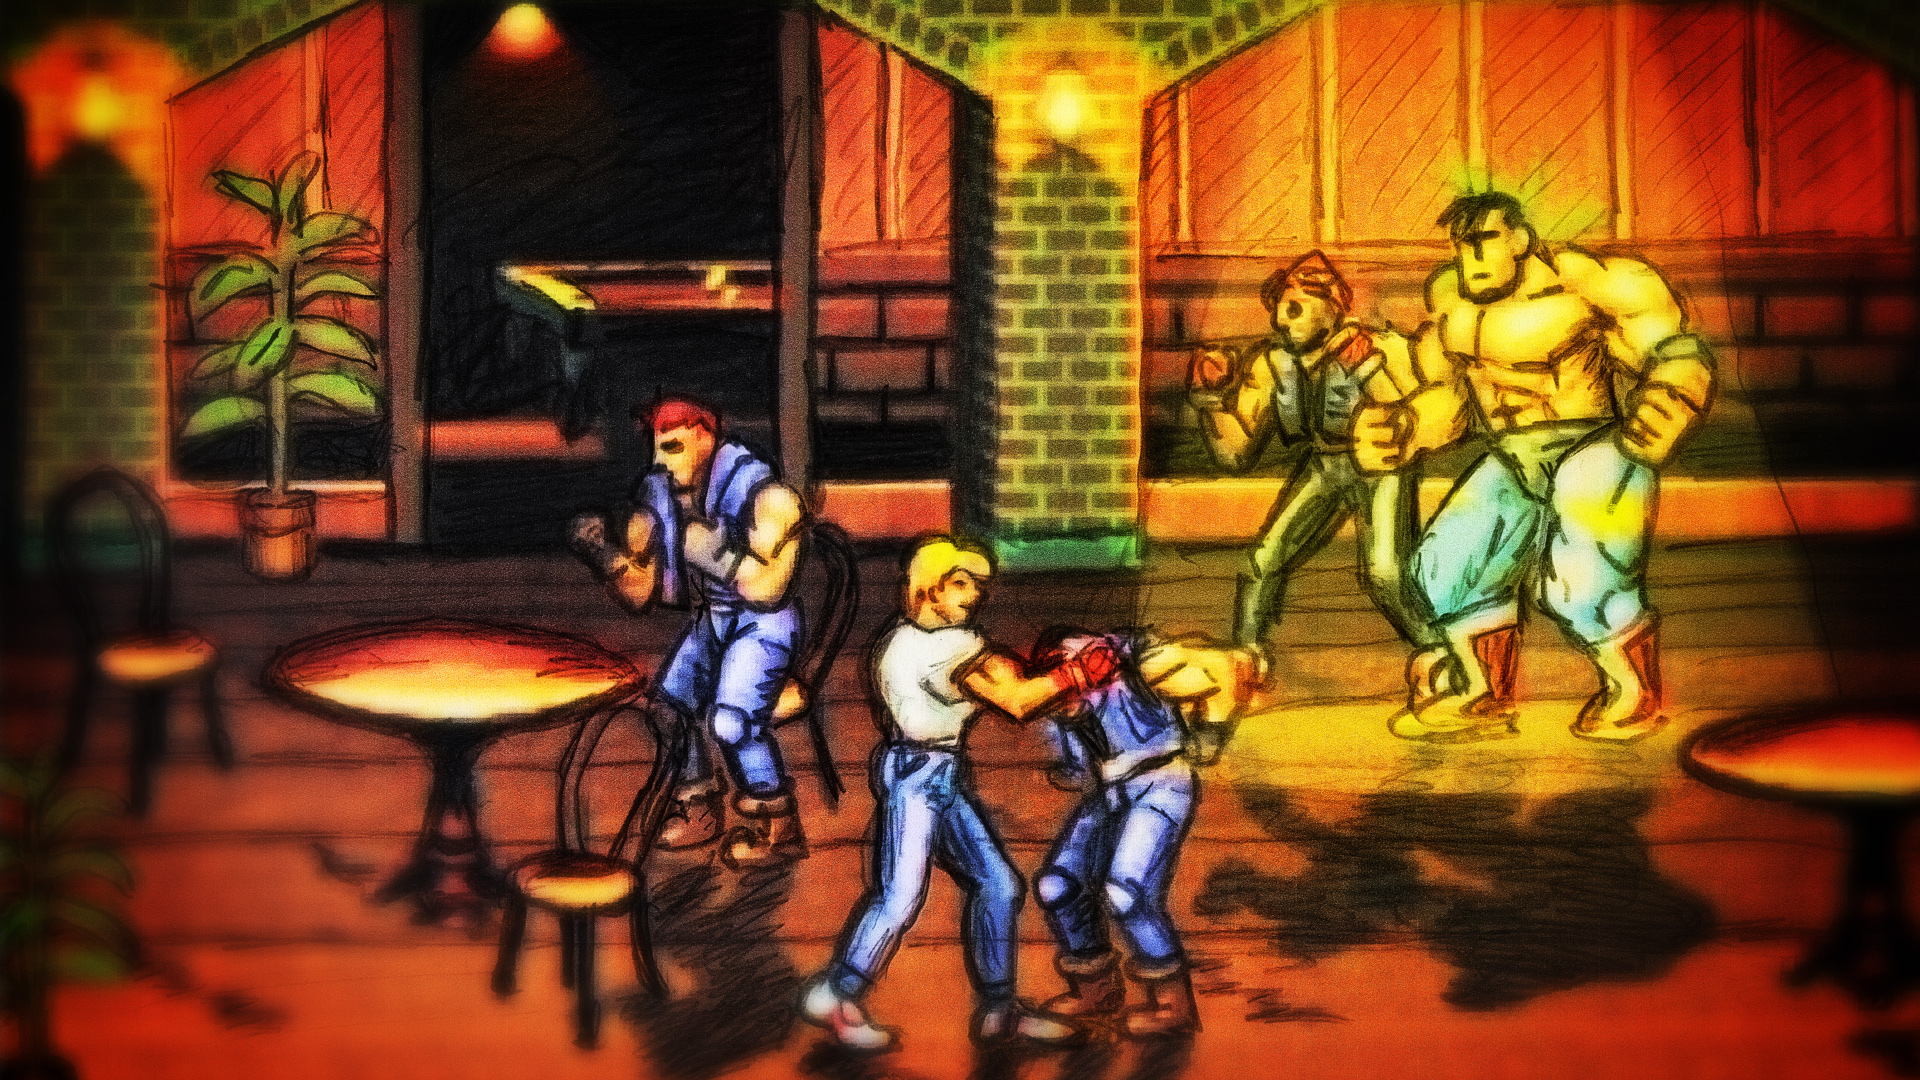 Streets Of Rage 3 Details Launchbox Games Database